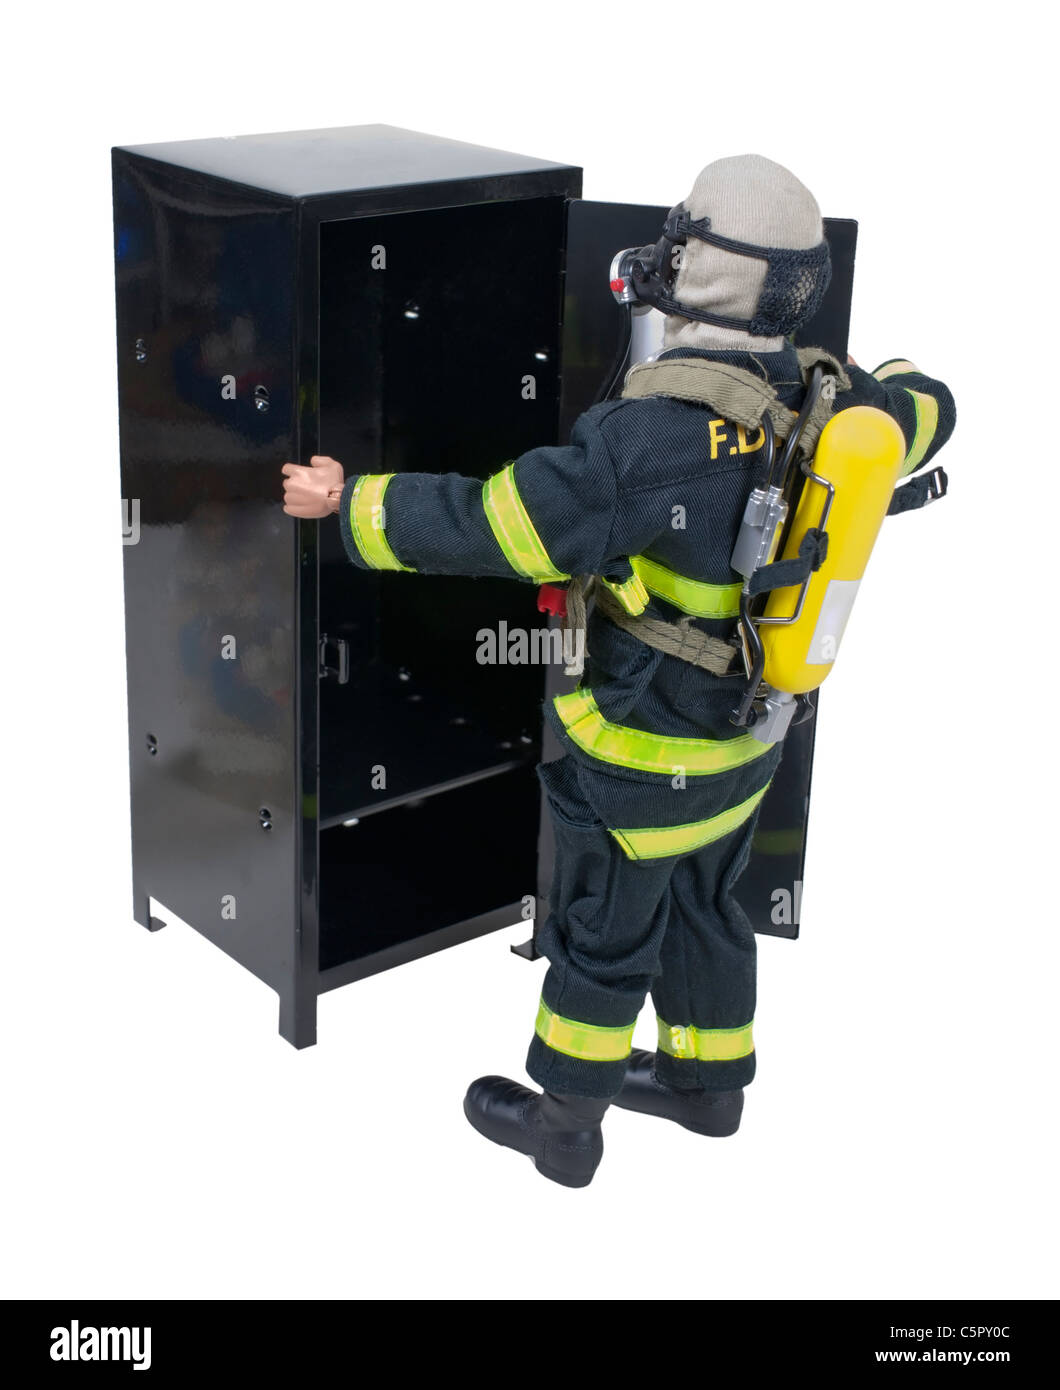 Fireman in front of a locker in protective gear used for fighting fires and saving lives - path included - Stock Image